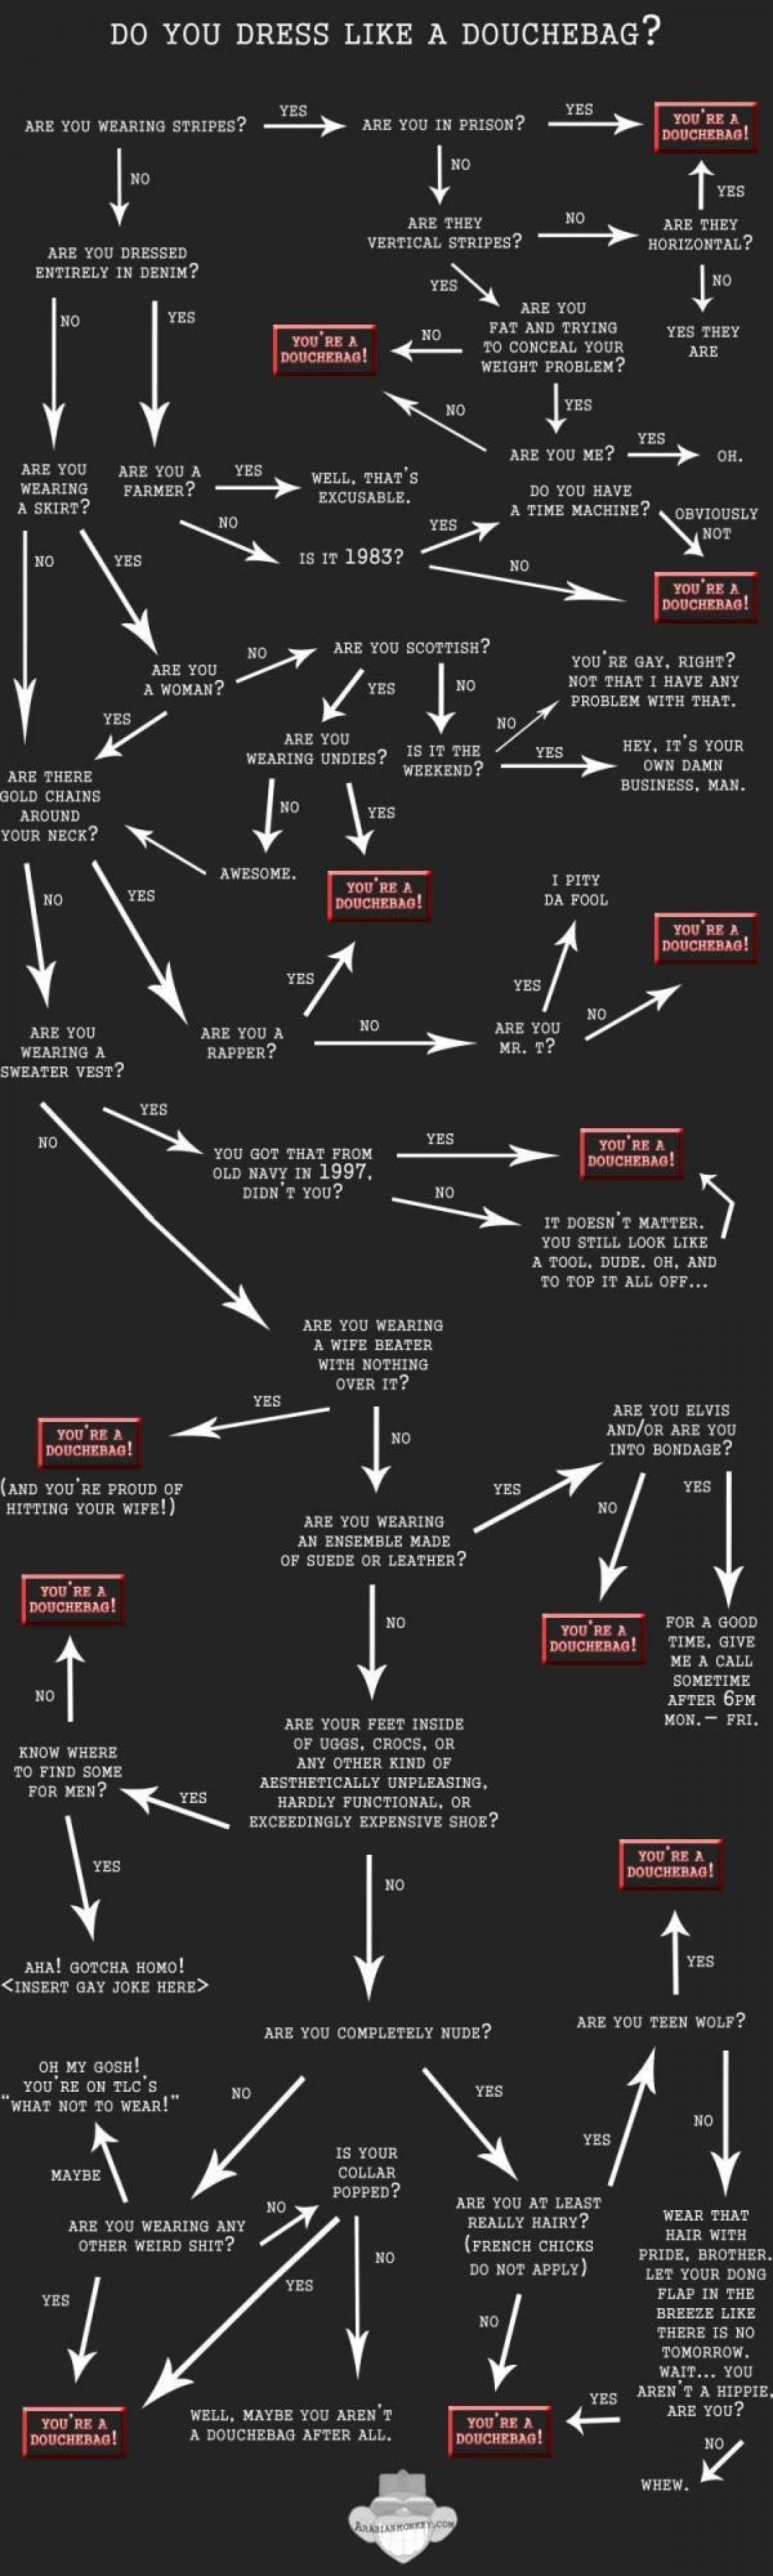 You Probably Dress Like A Douchebag, Here's Why Infographic